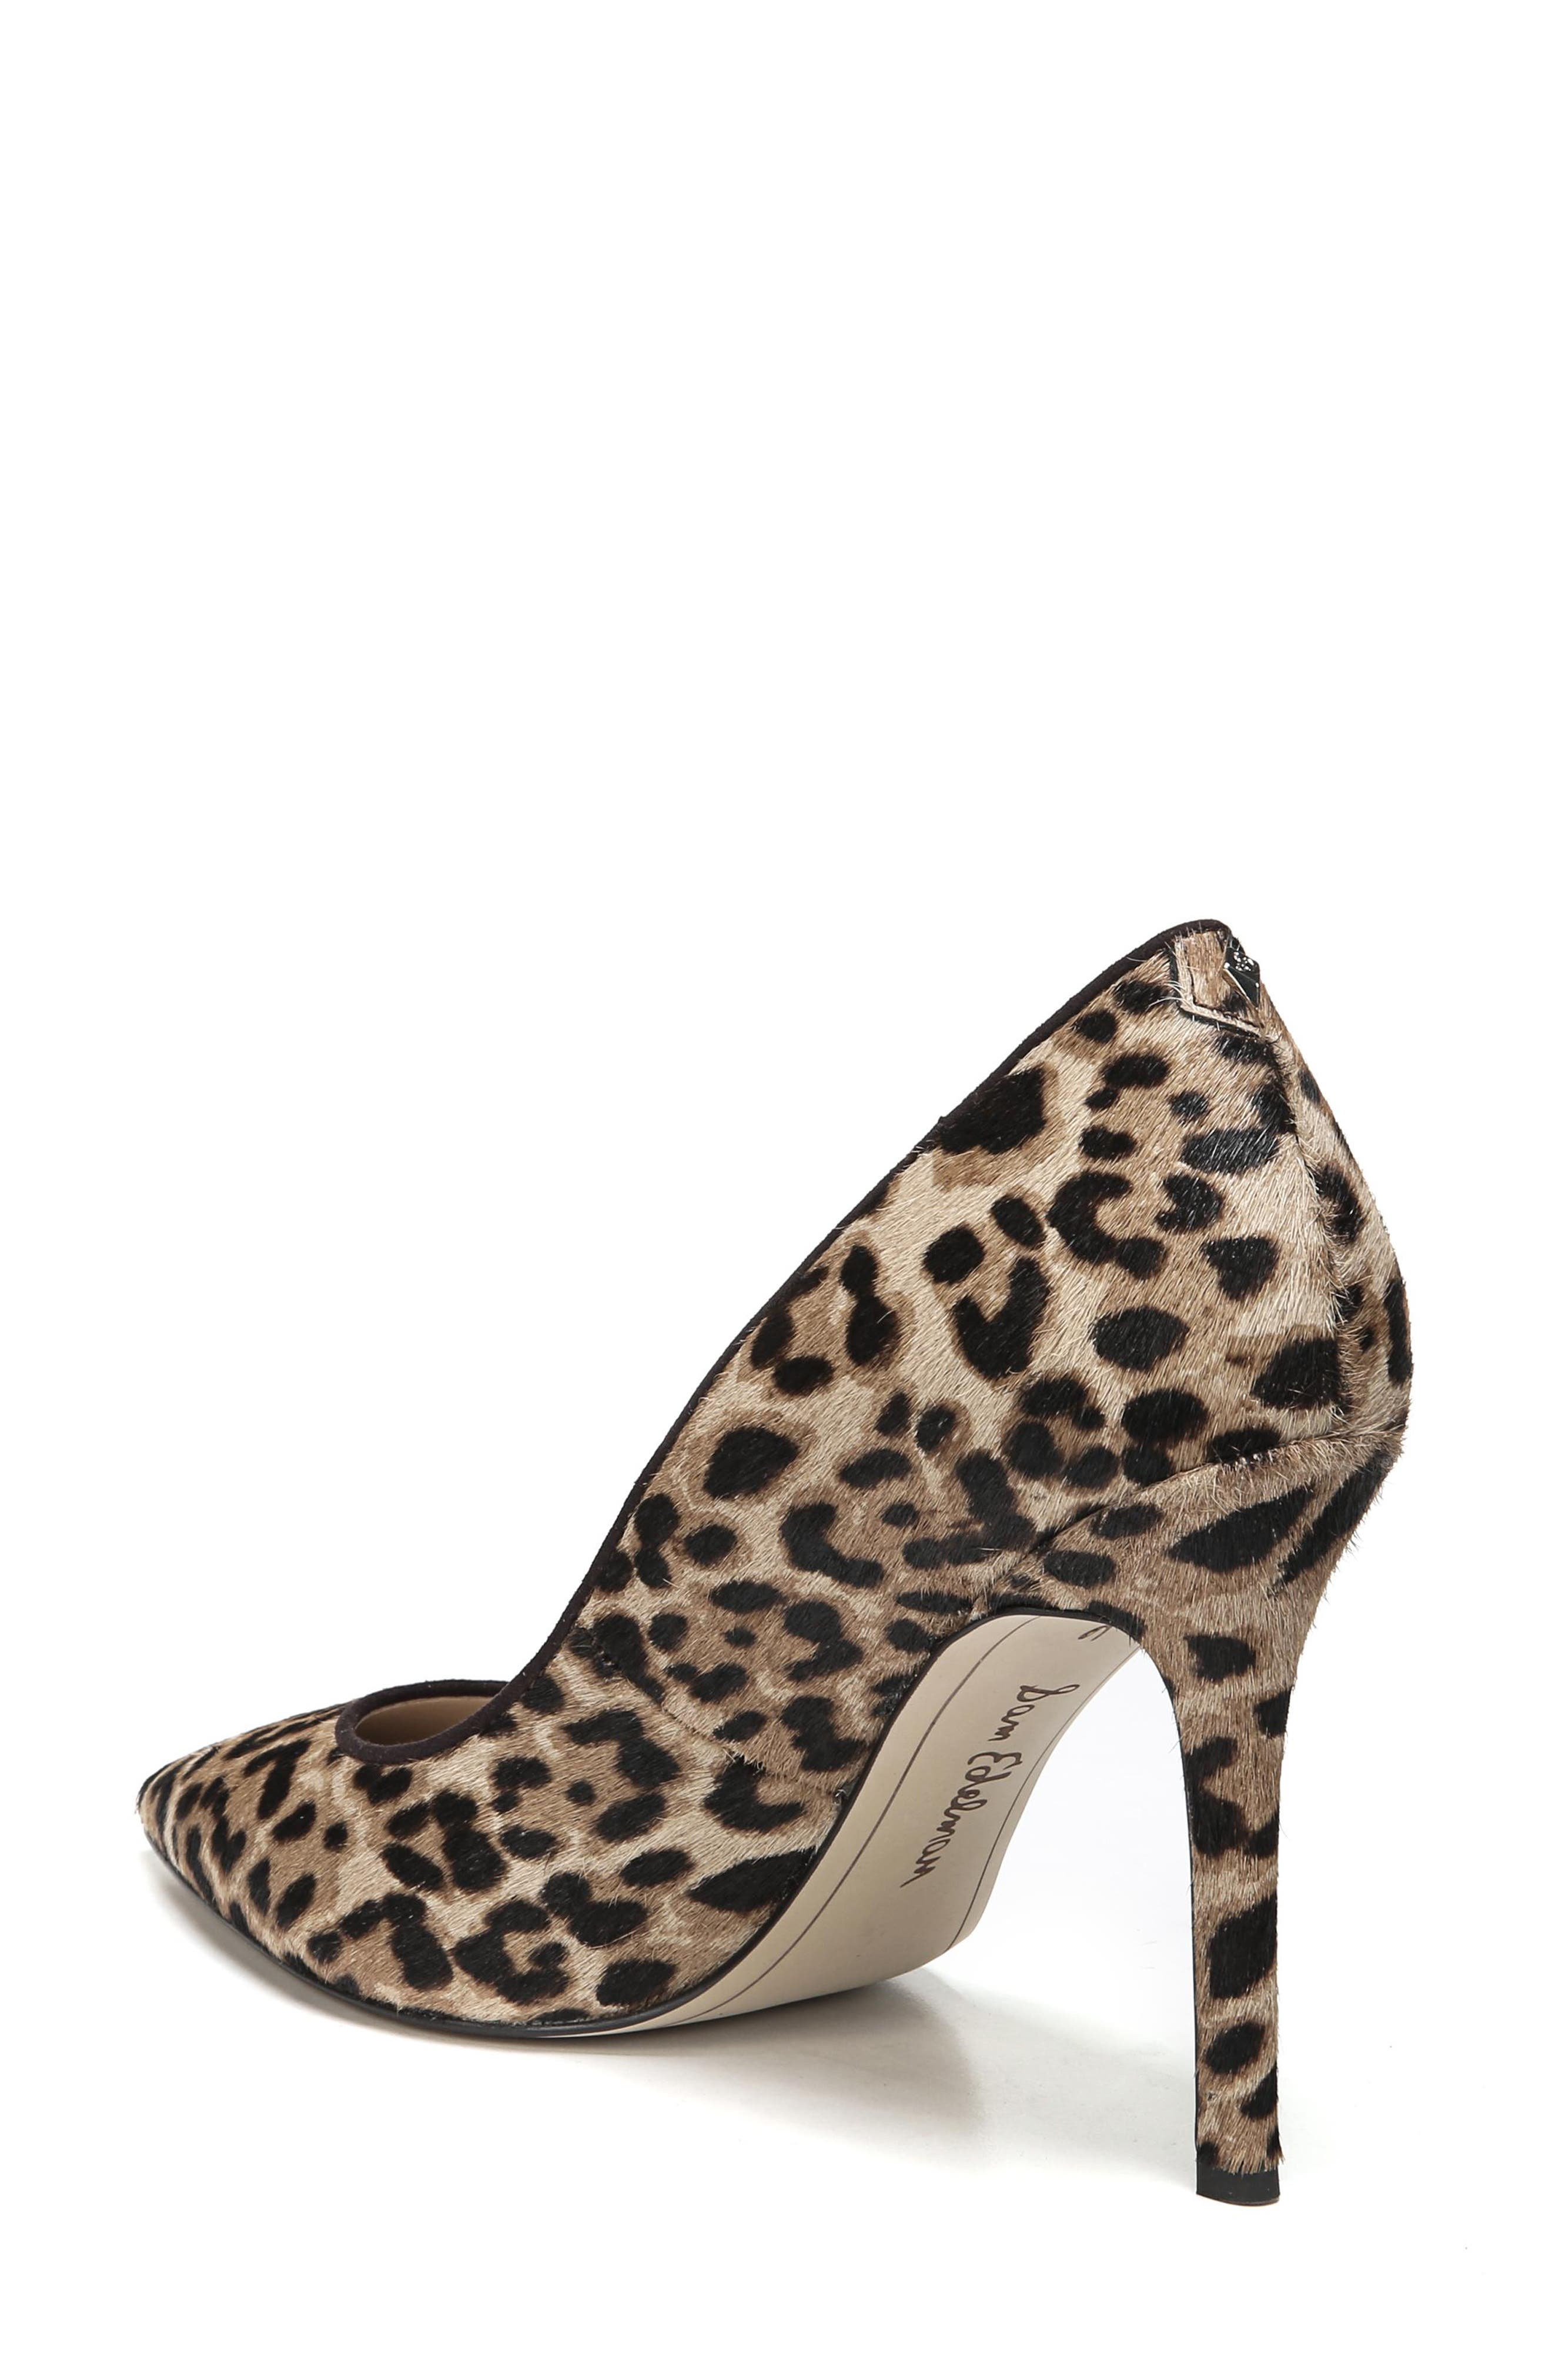 SAM EDELMAN, Hazel Pointy Toe Pump, Alternate thumbnail 2, color, LEOPARD CALF HAIR